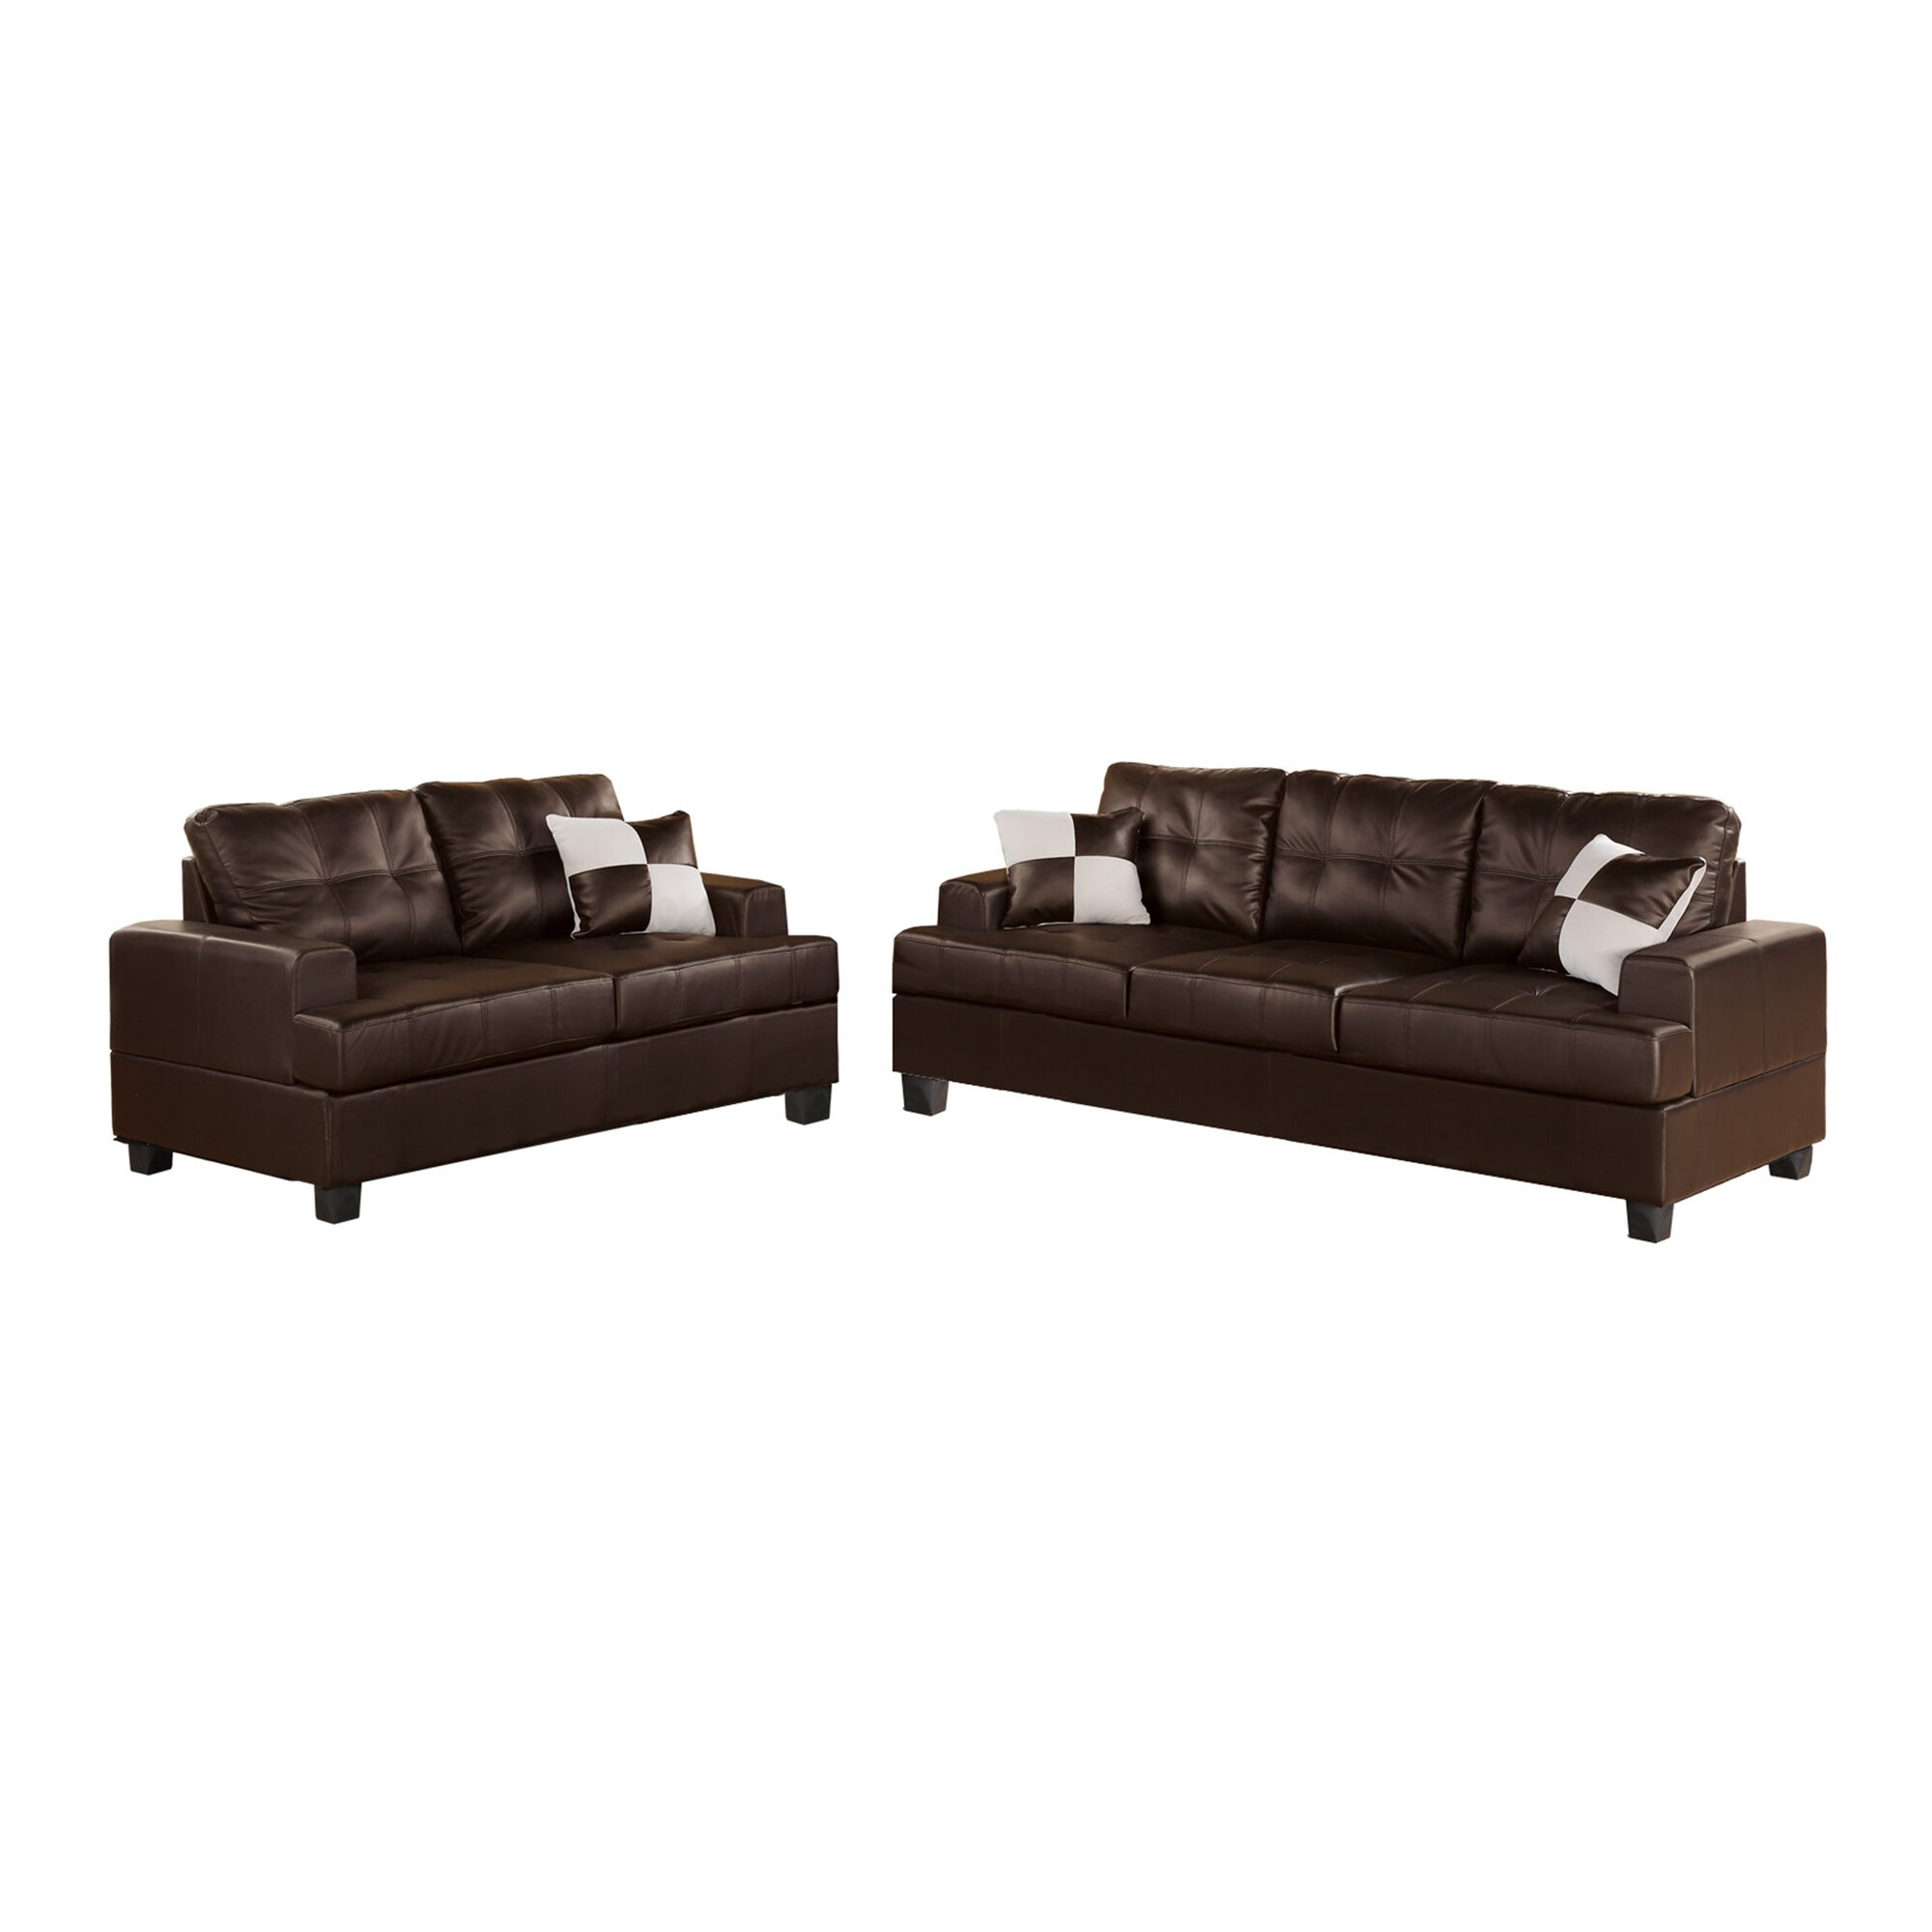 Cavallo Sofa and Loveseat Set & Reviews